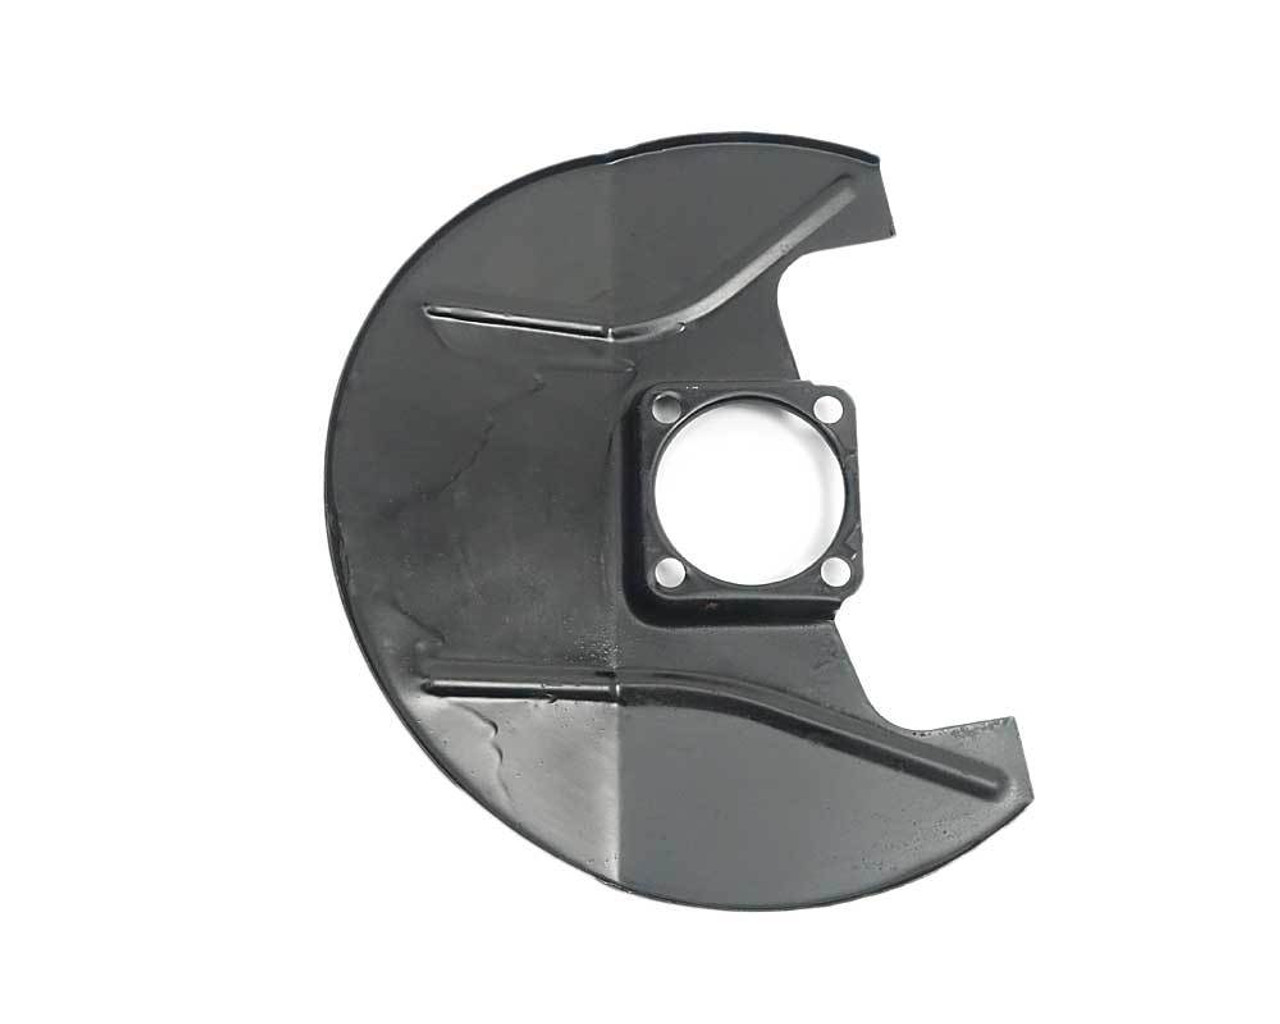 Front Right Brake Dust Shield - 1972-85